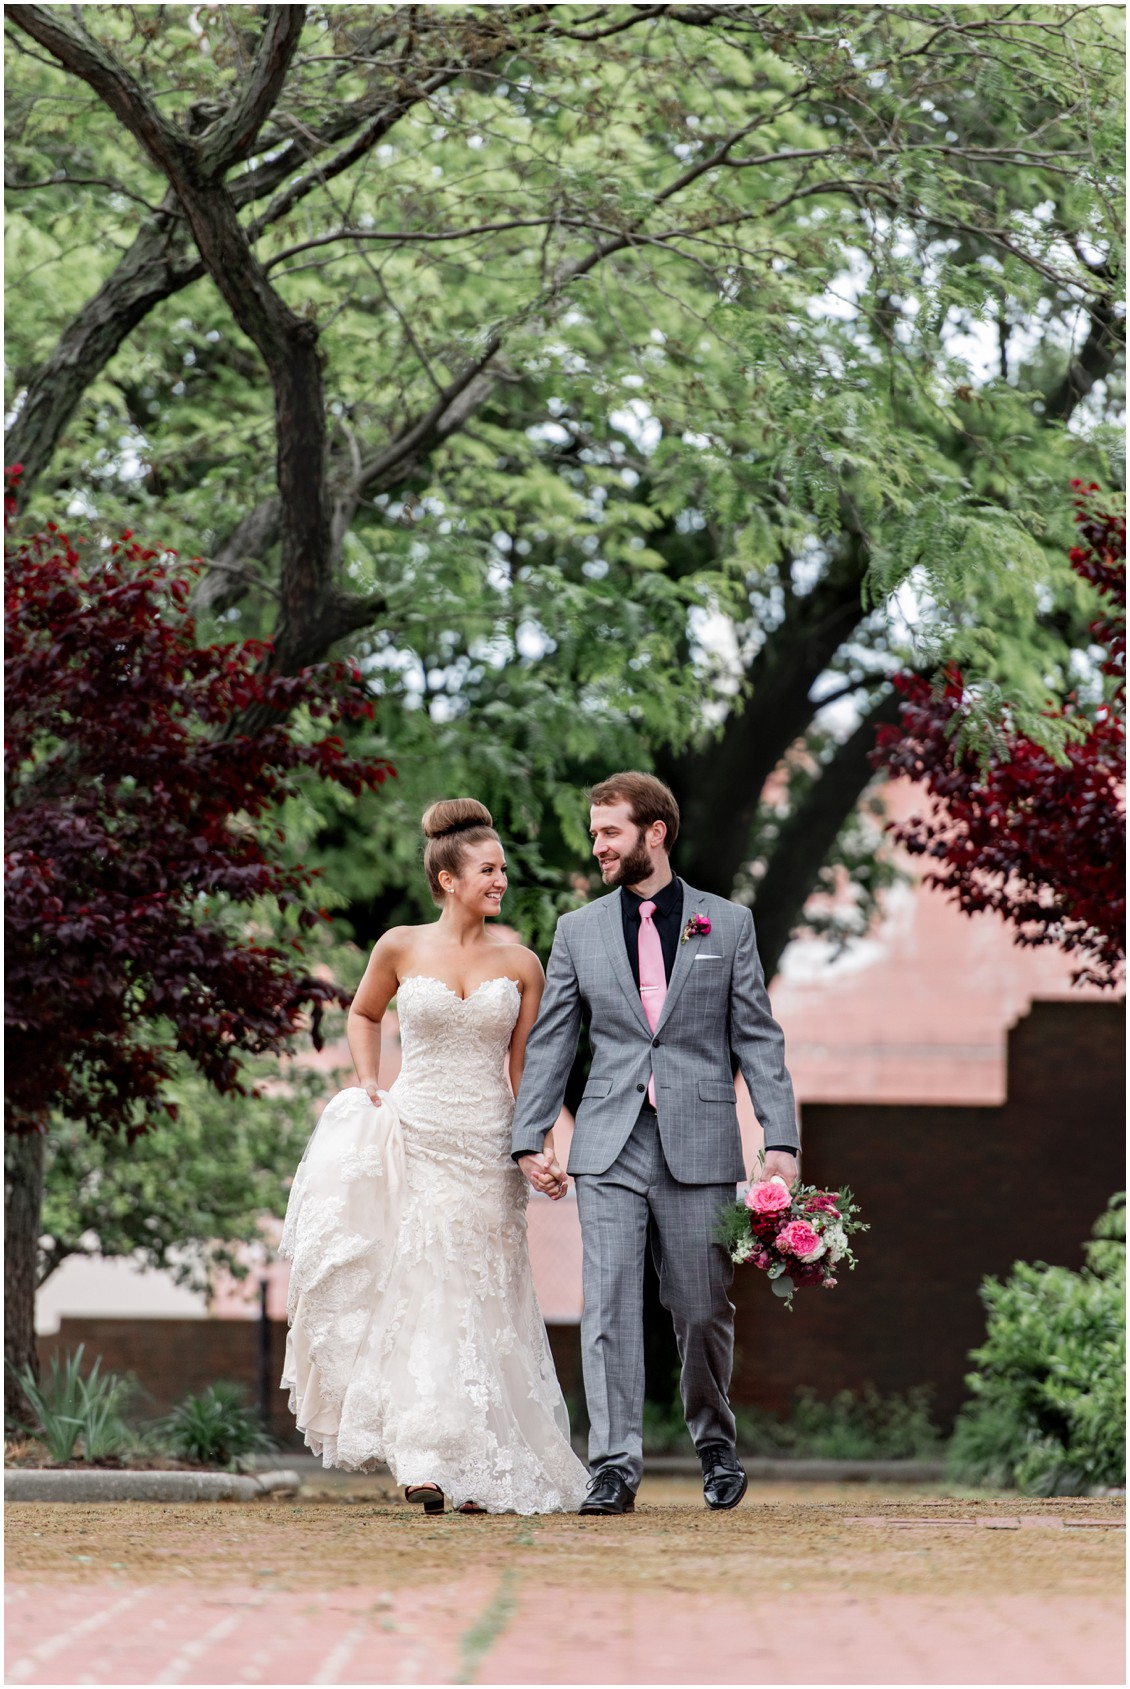 Bride and groom walking hand-in-hand, gray suit with pink tie, and strapless wedding gown. | My Eastern Shore Wedding |